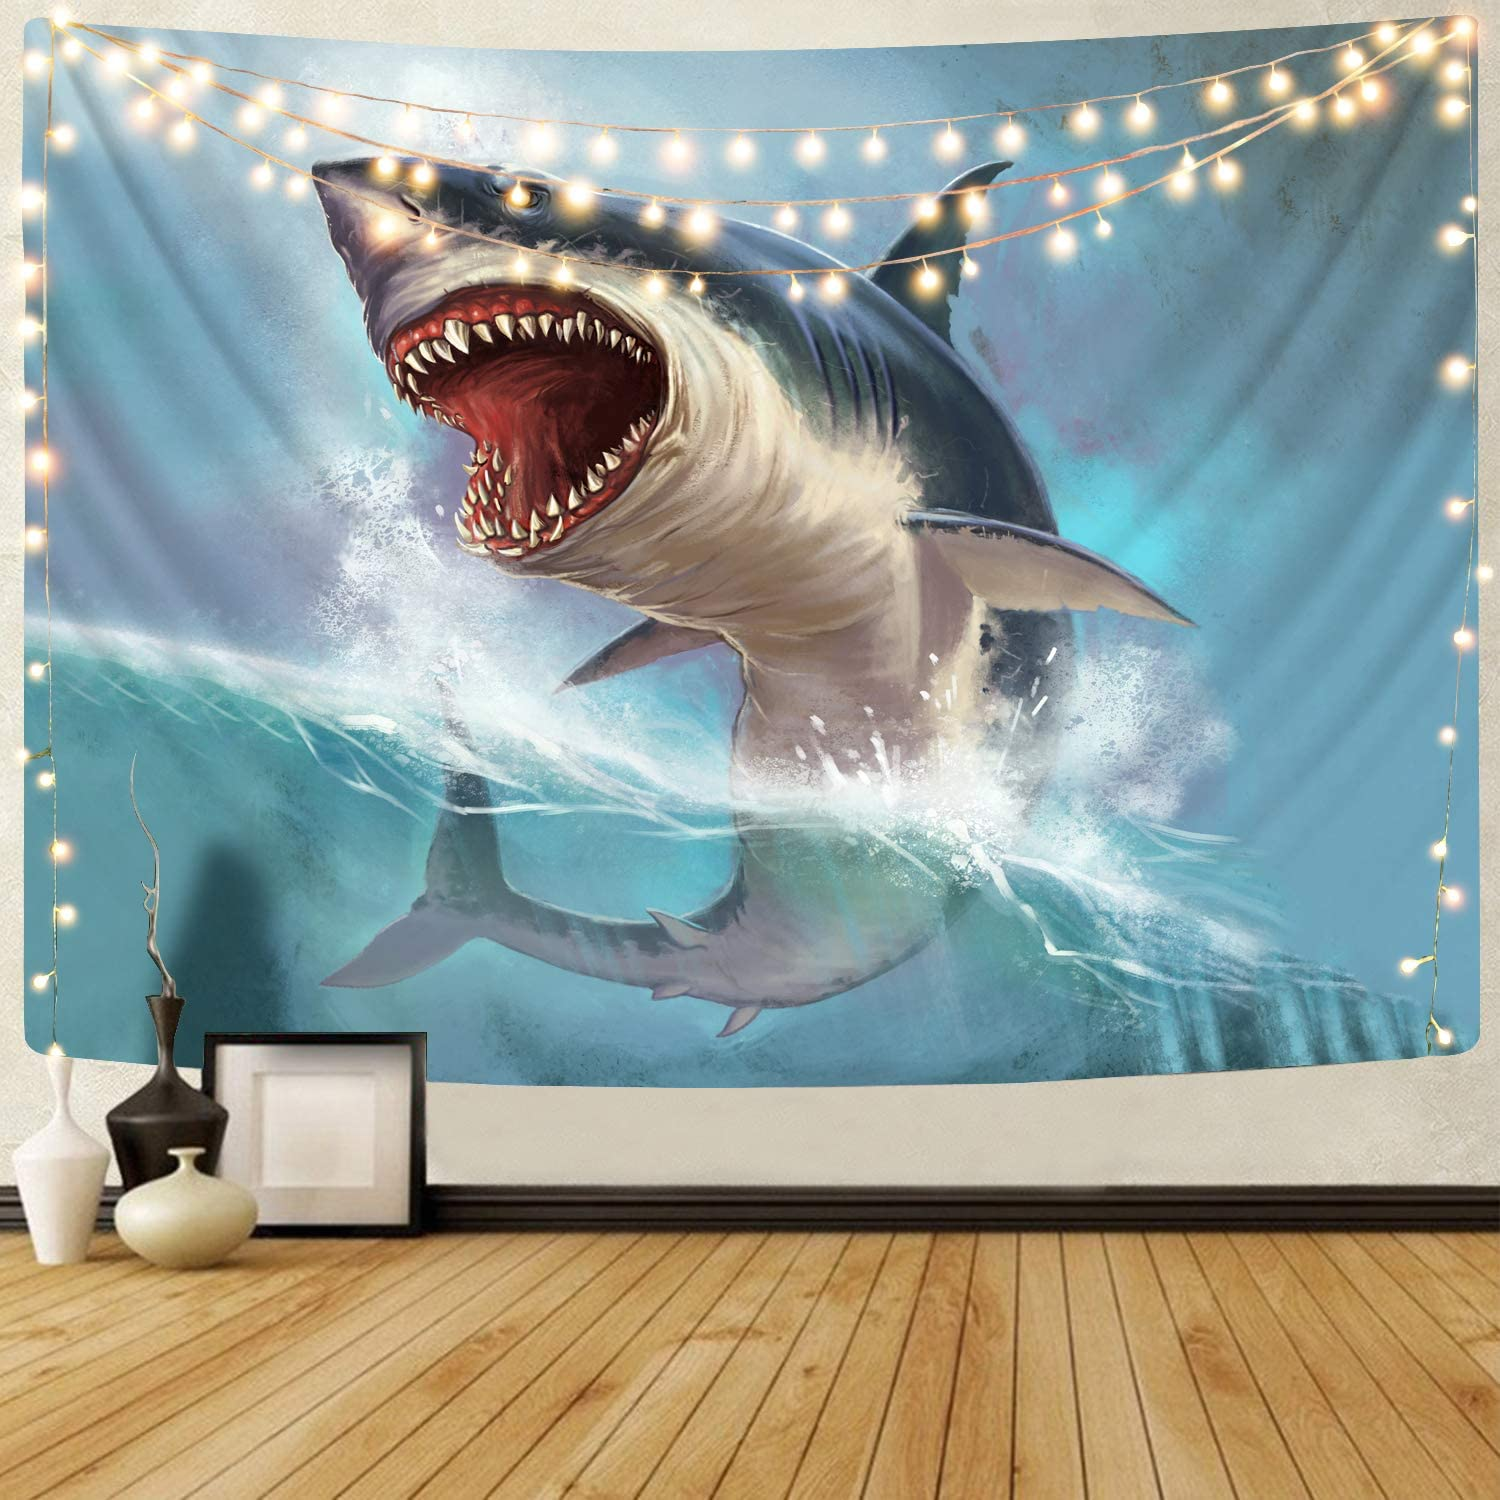 Sportbull Fish Tapestry for Bedroom, Ocean 3D Printed Big White Shark Tapestries Wall Hanging for Living Room Dorm Decor Family Party Decorative (51.2H x 59.1W,Blue)